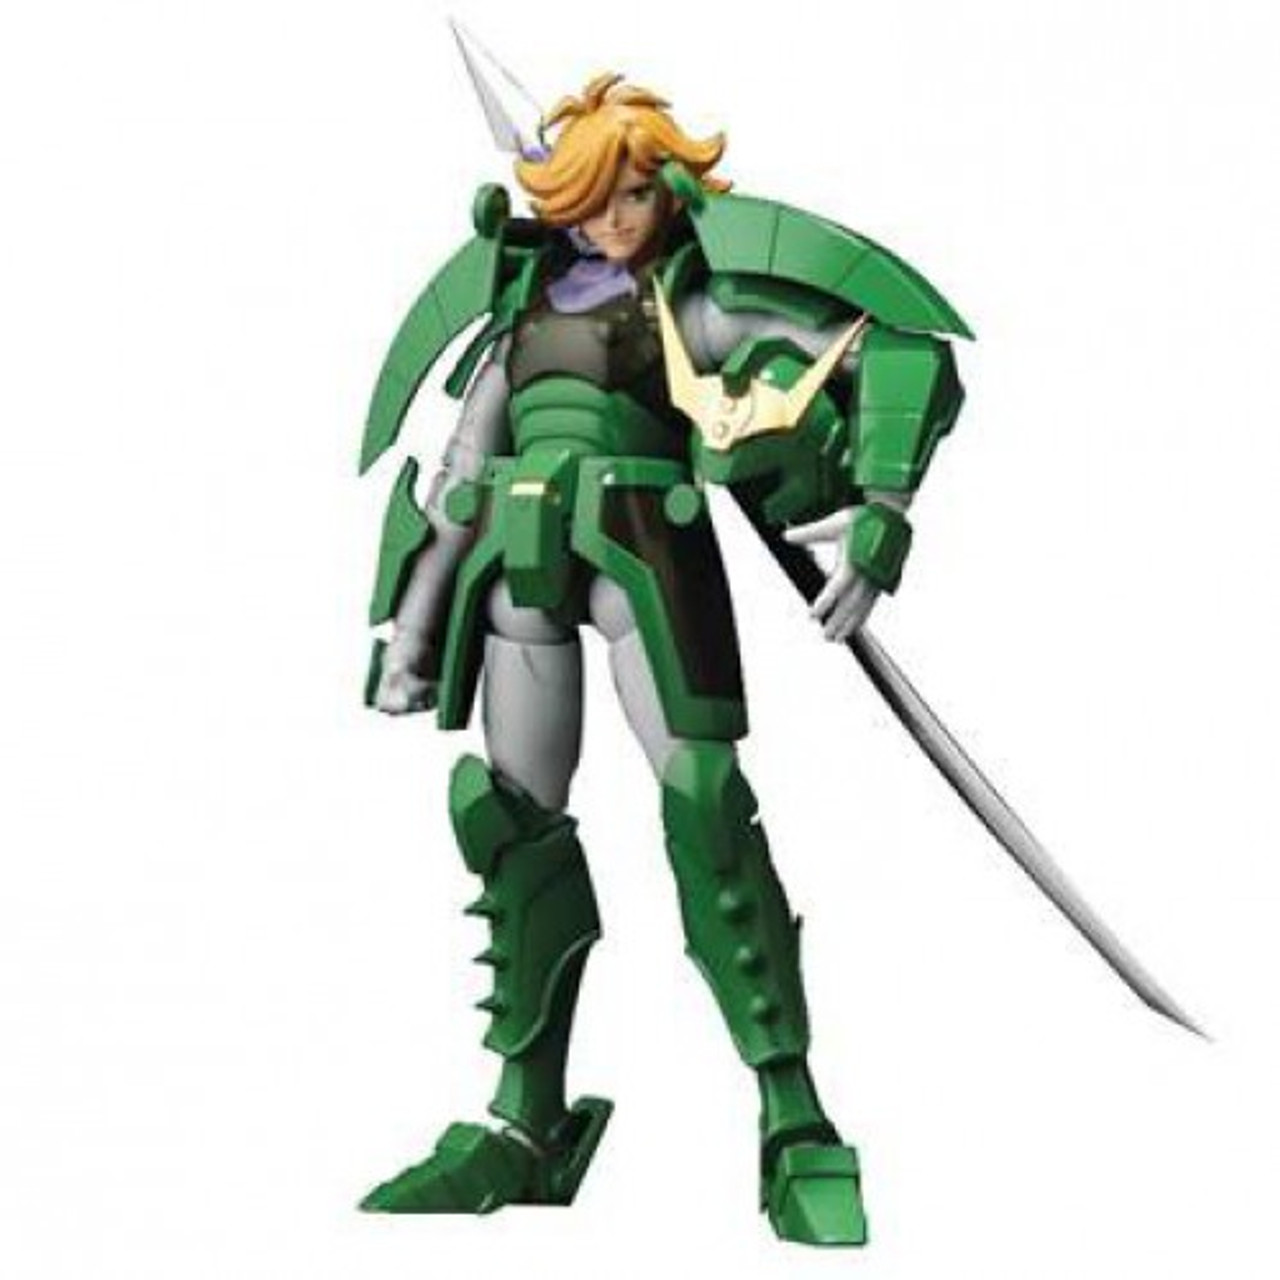 Halo Tucker Roblox Ronin Warriors Sage Of The Halo Action Figure 1000 Toys Inc Toywiz